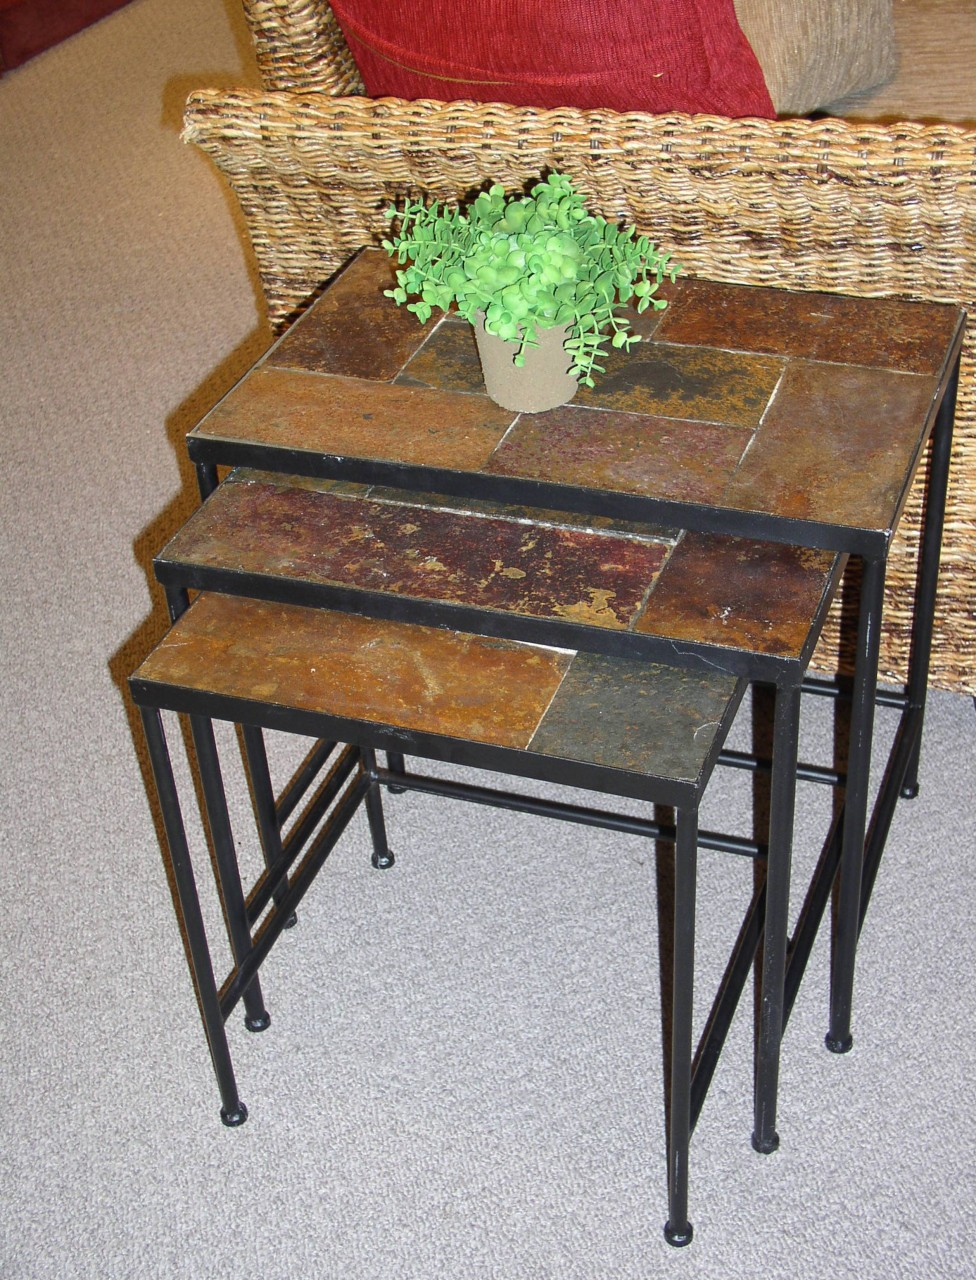 Space Saving Stepping Slate End Tables With Natural Slate Tilling Plus  Black Metal Leg Plus Greenery